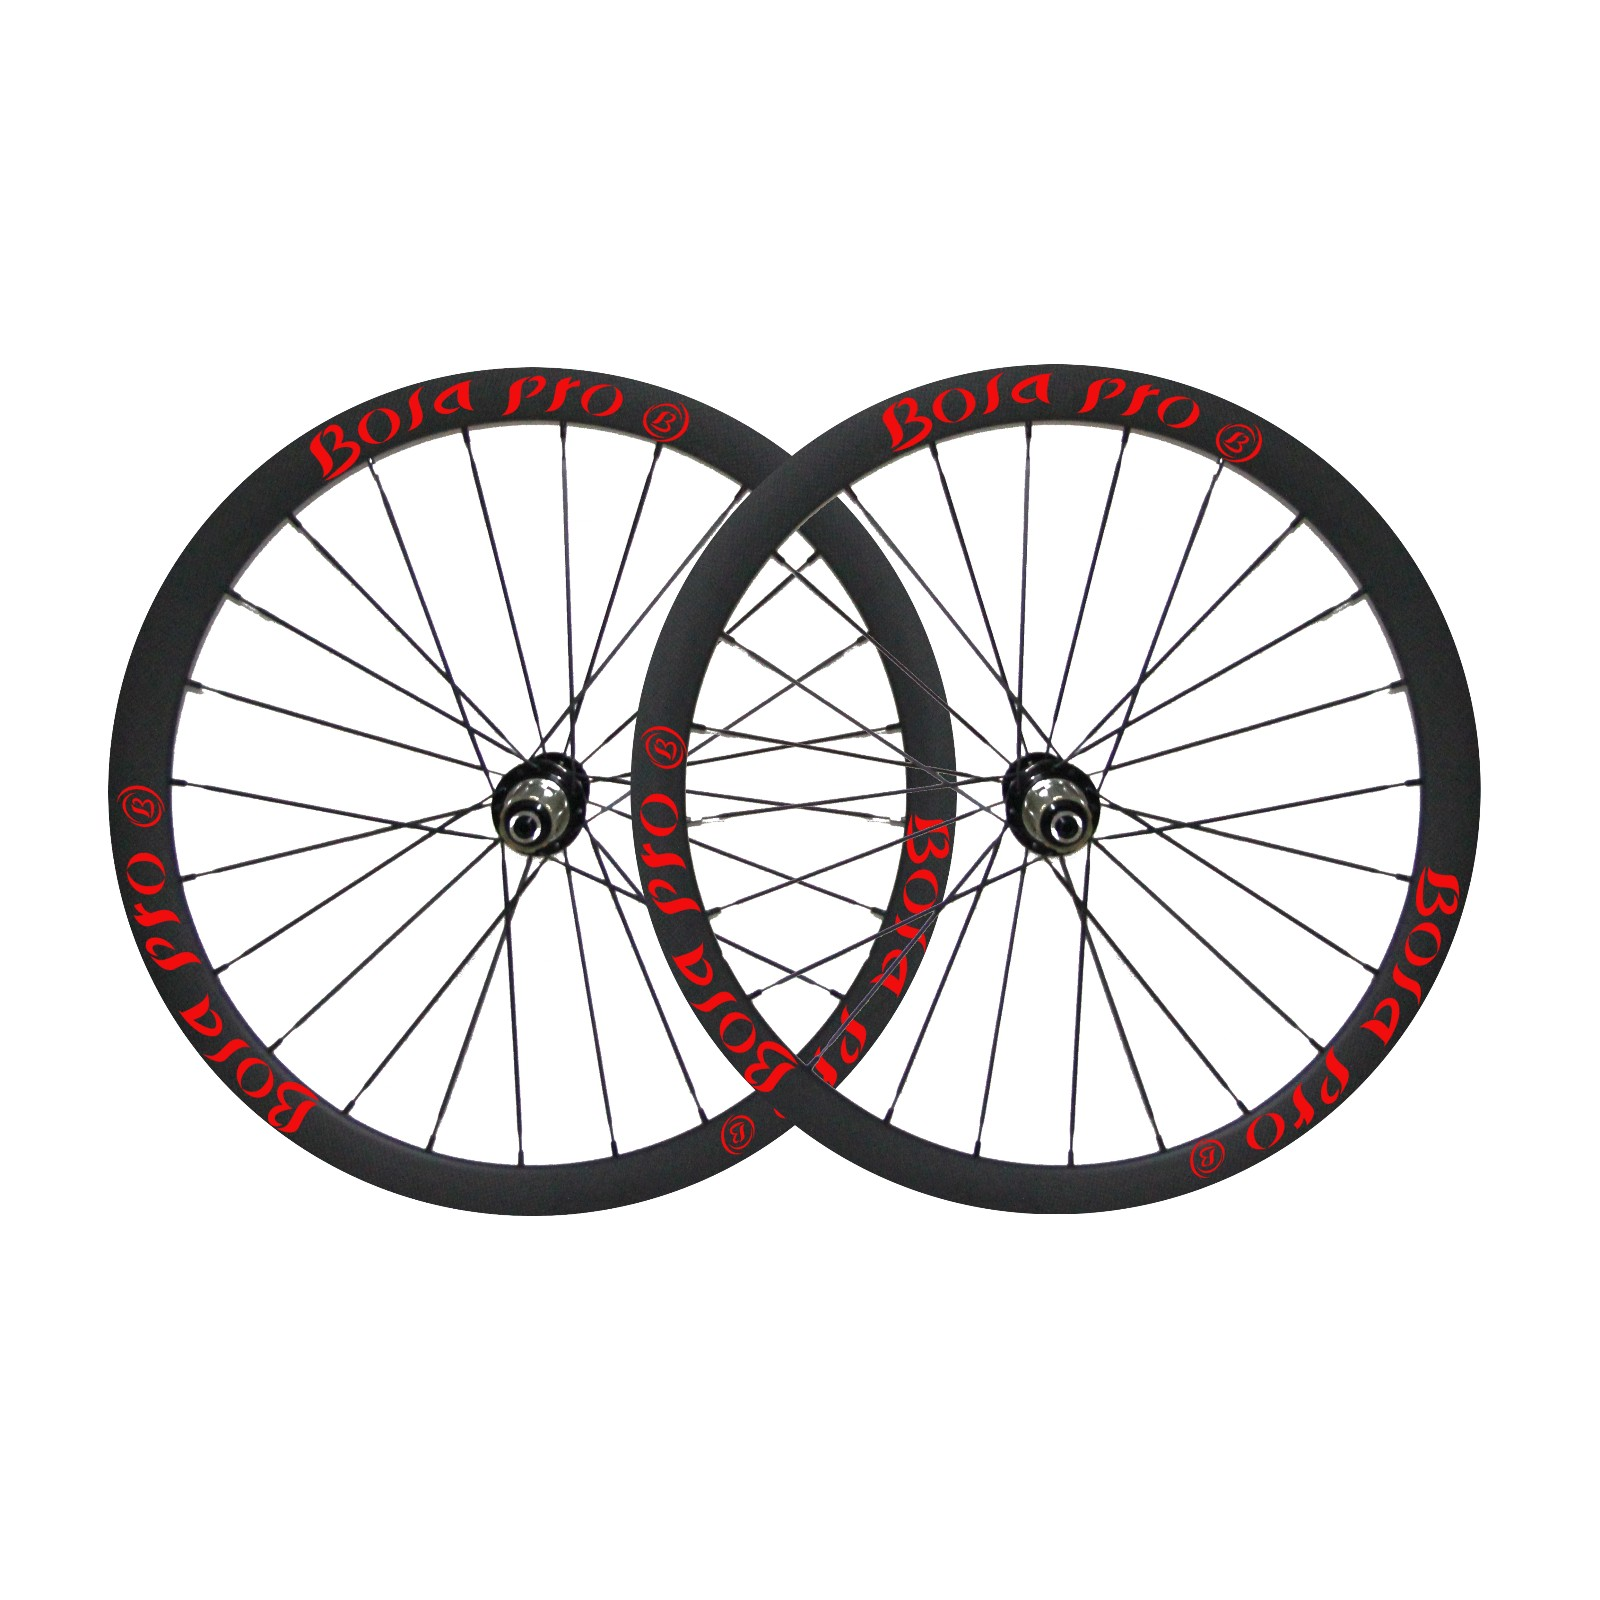 700C 35mm carbon track wheetset with center lock and straighpull hub